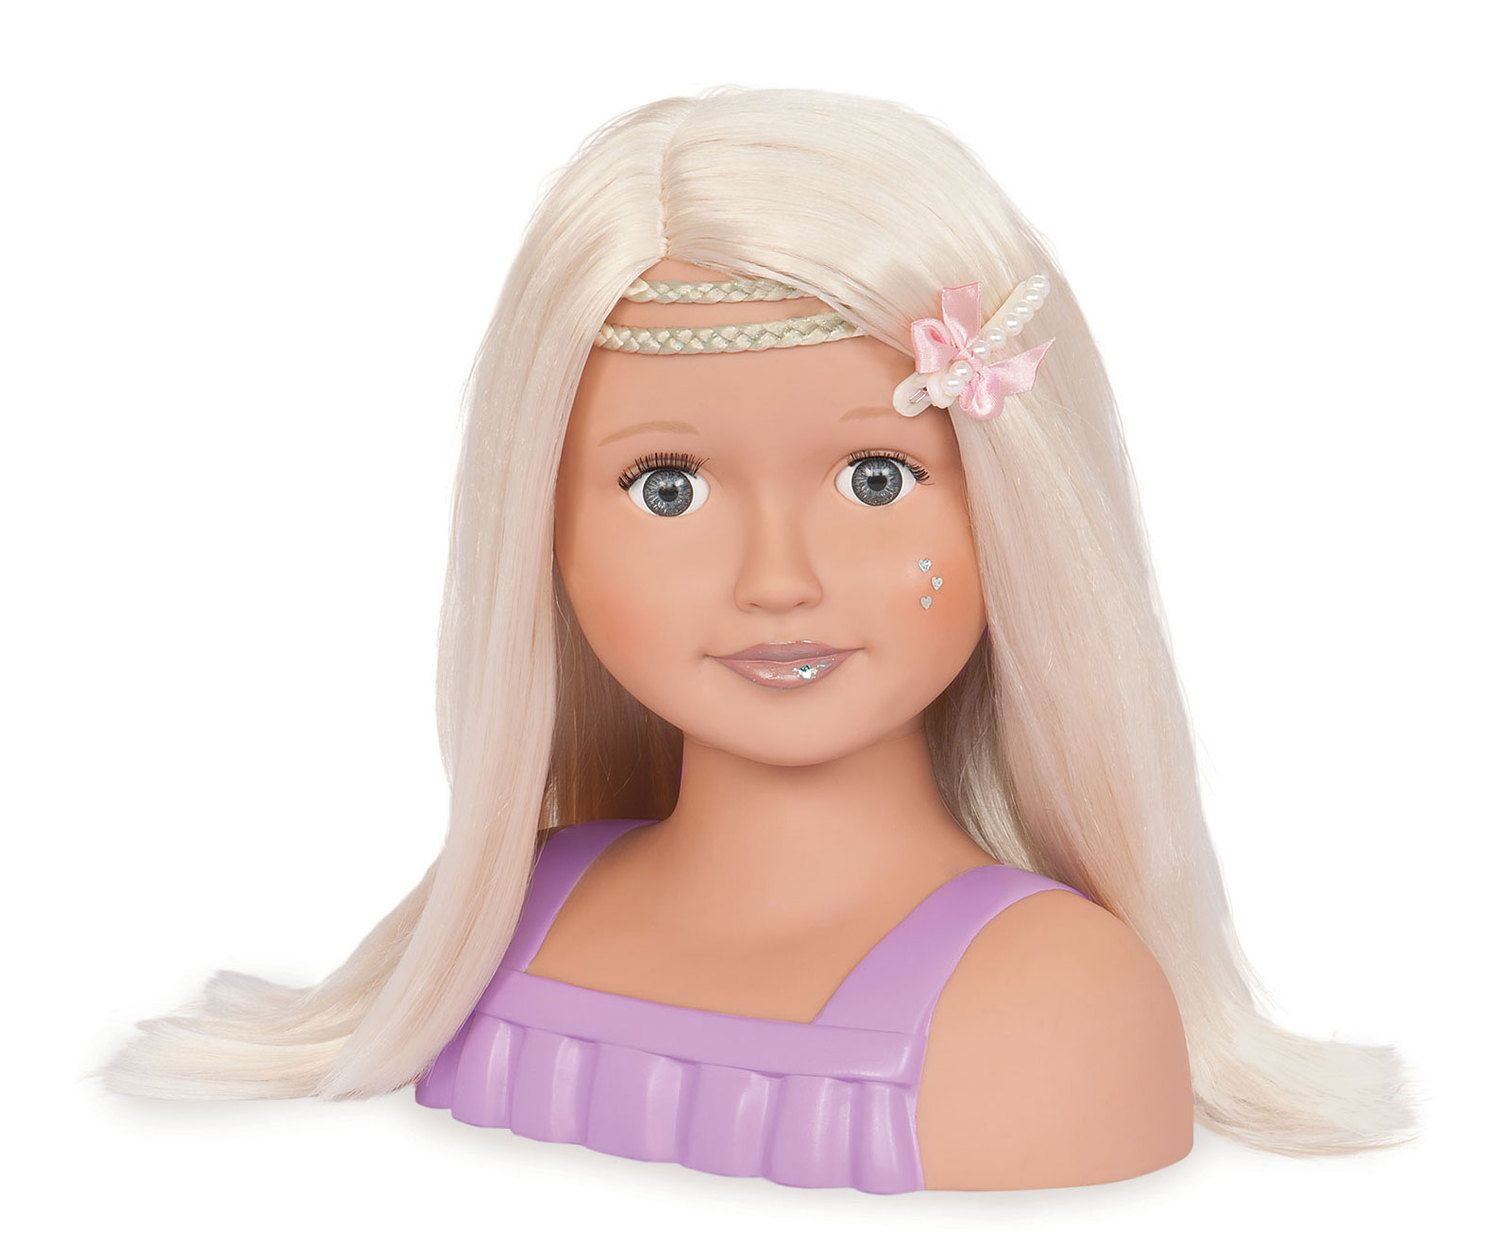 meet trista! trista is our generation's hair play doll head